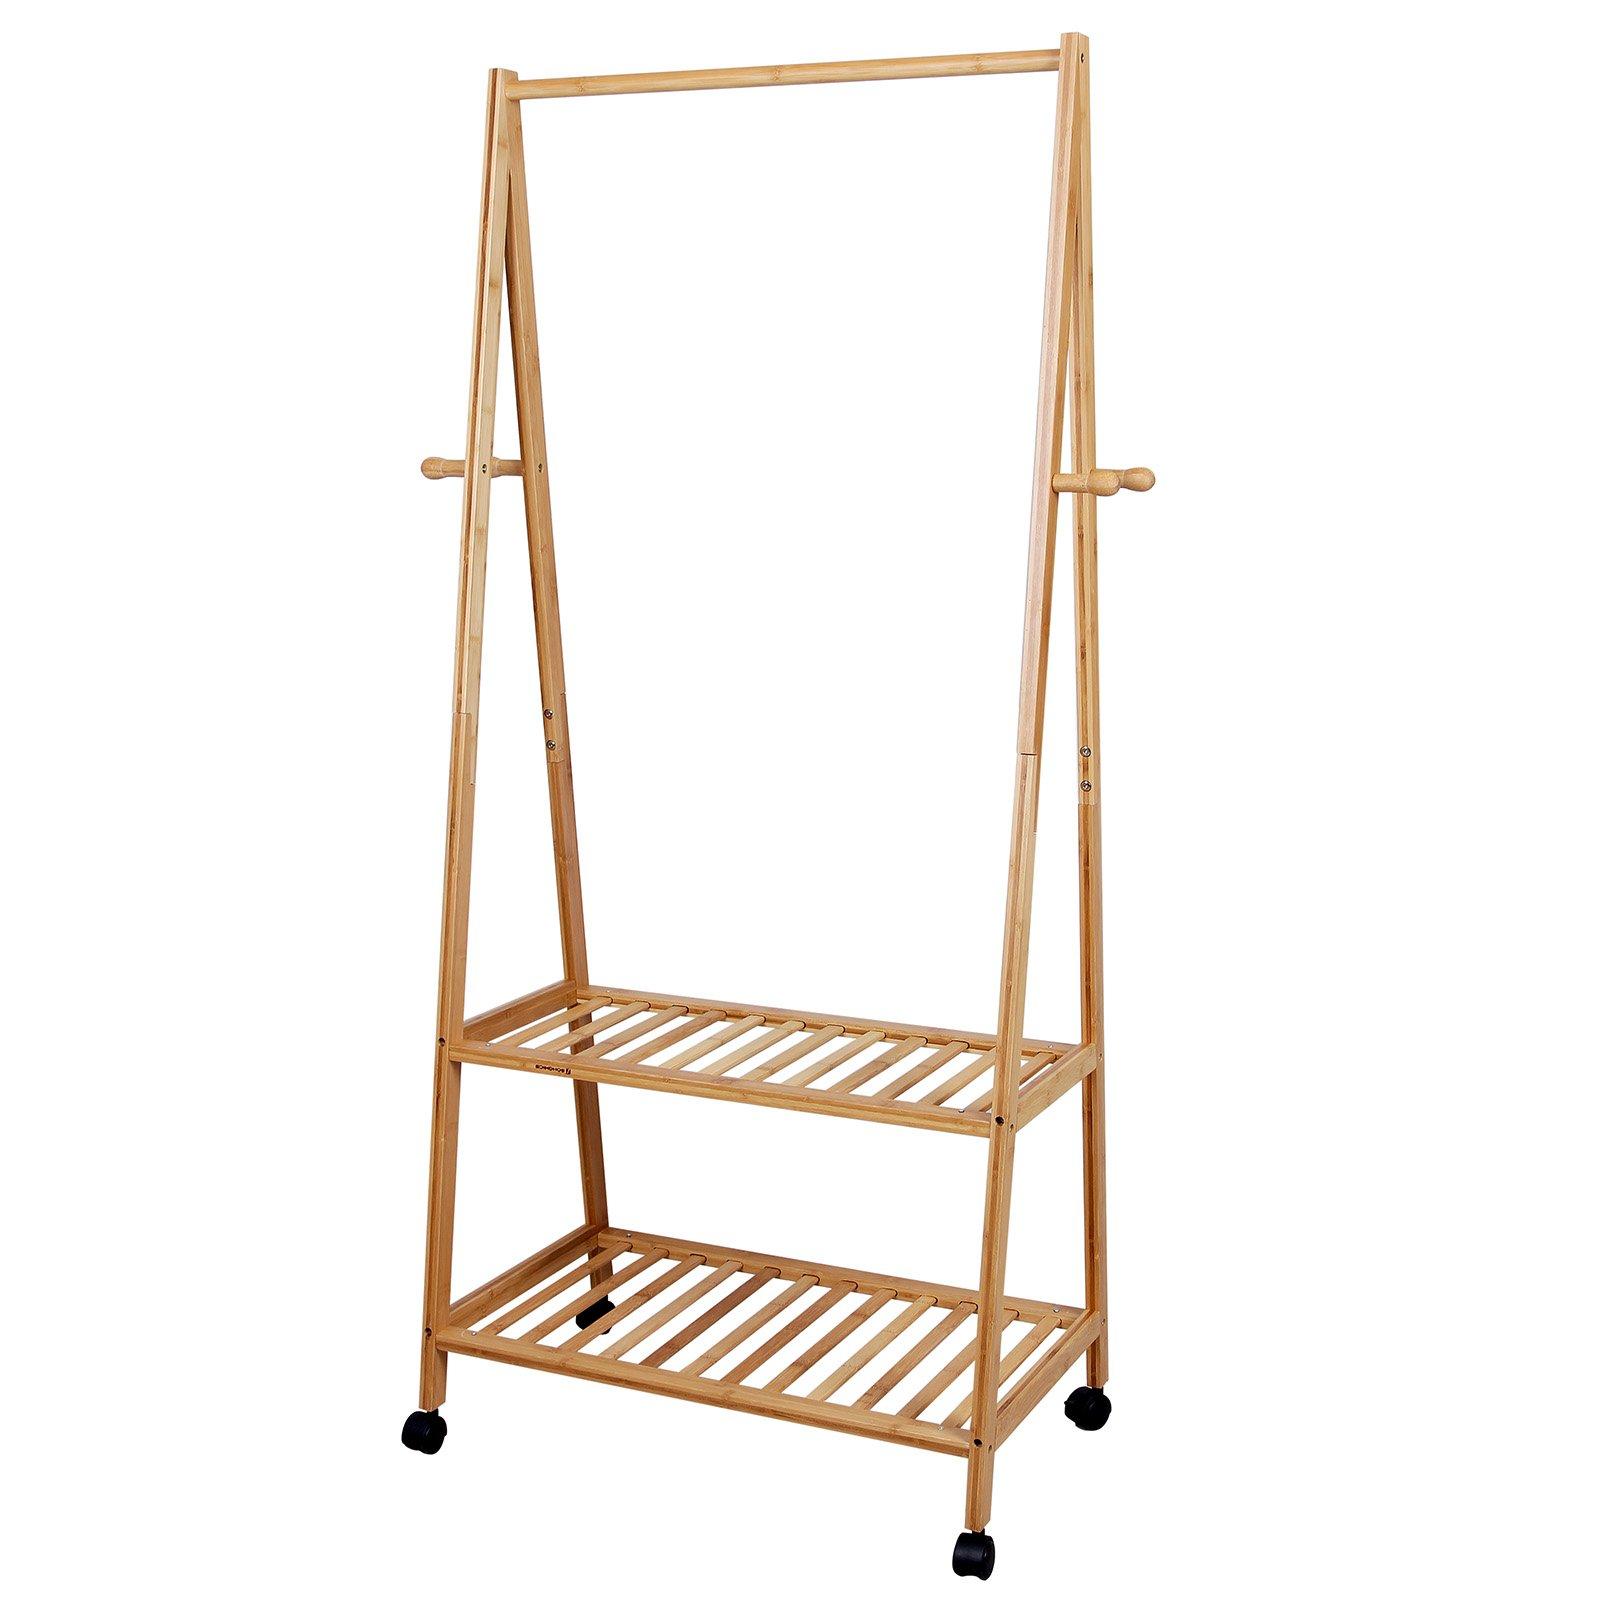 Wooden Clothes Rack: Wood Clothing Racks: Amazon.com